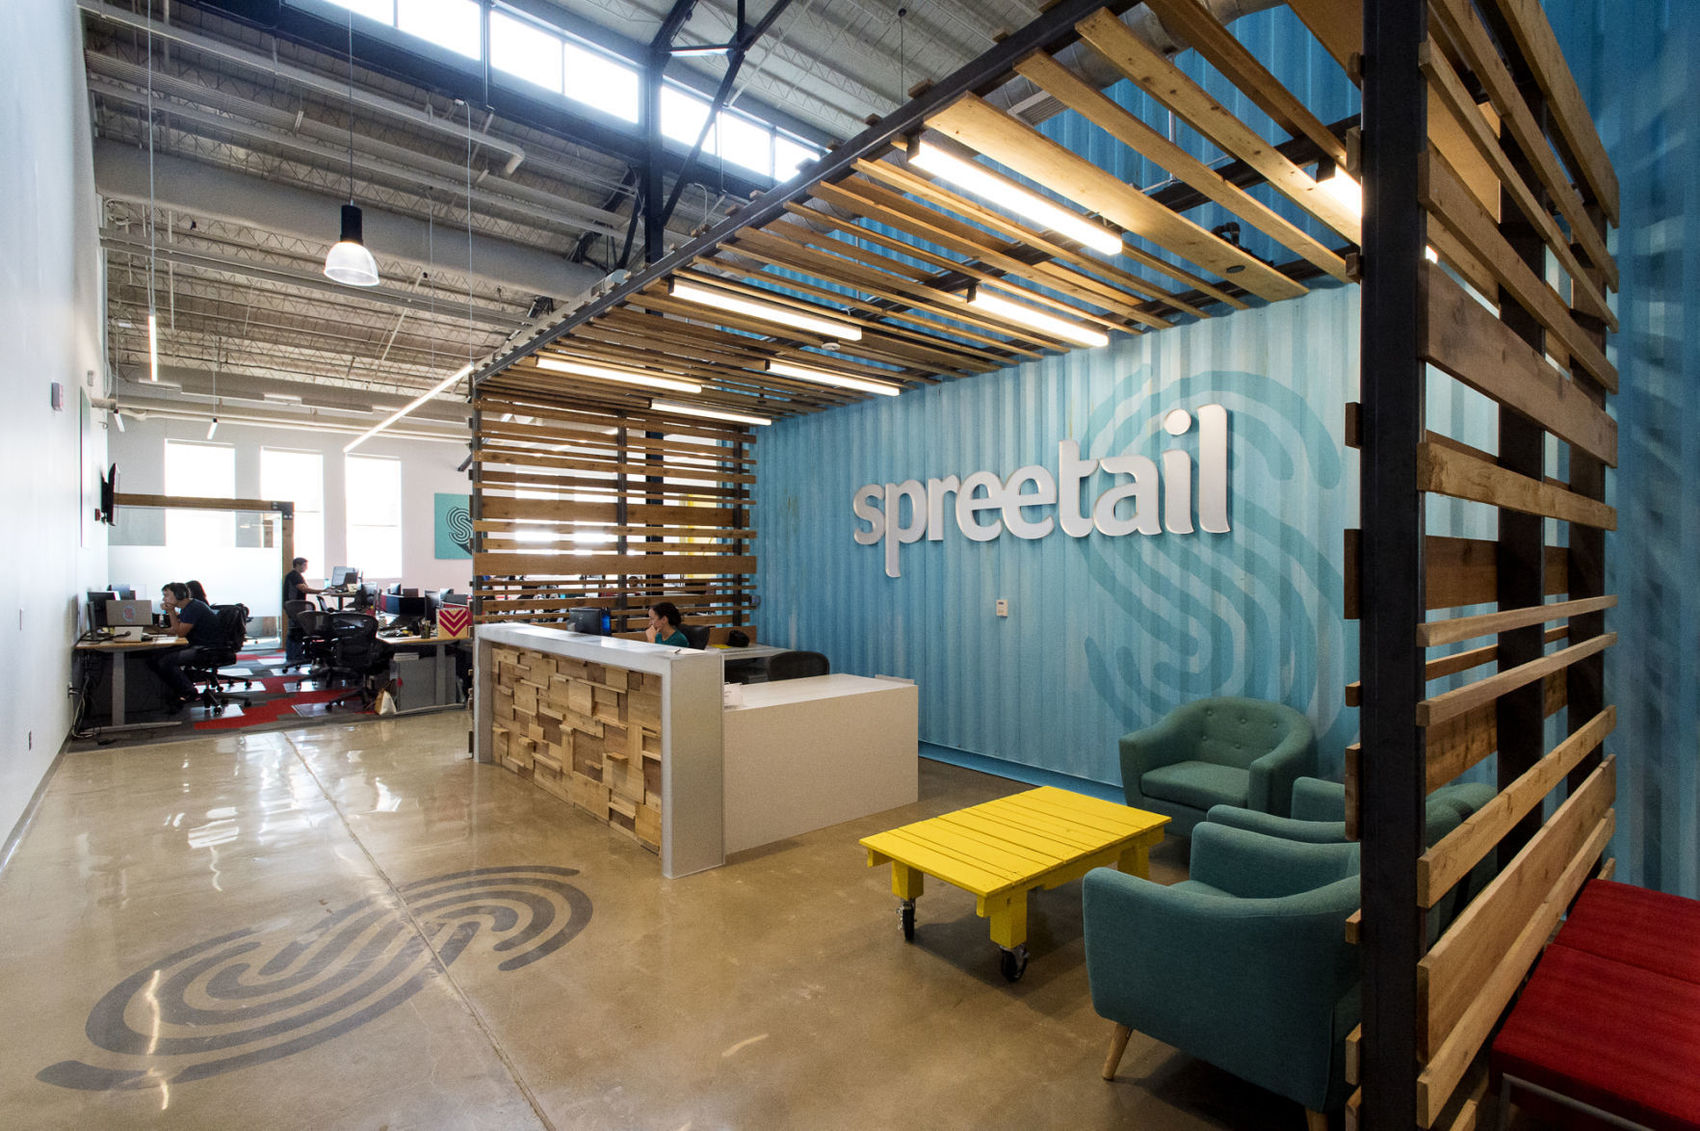 Lincoln e-commerce company Spreetail is expanding into more space at Nebraska Innovation Campus and also is planning to open an office in Omaha later this year.